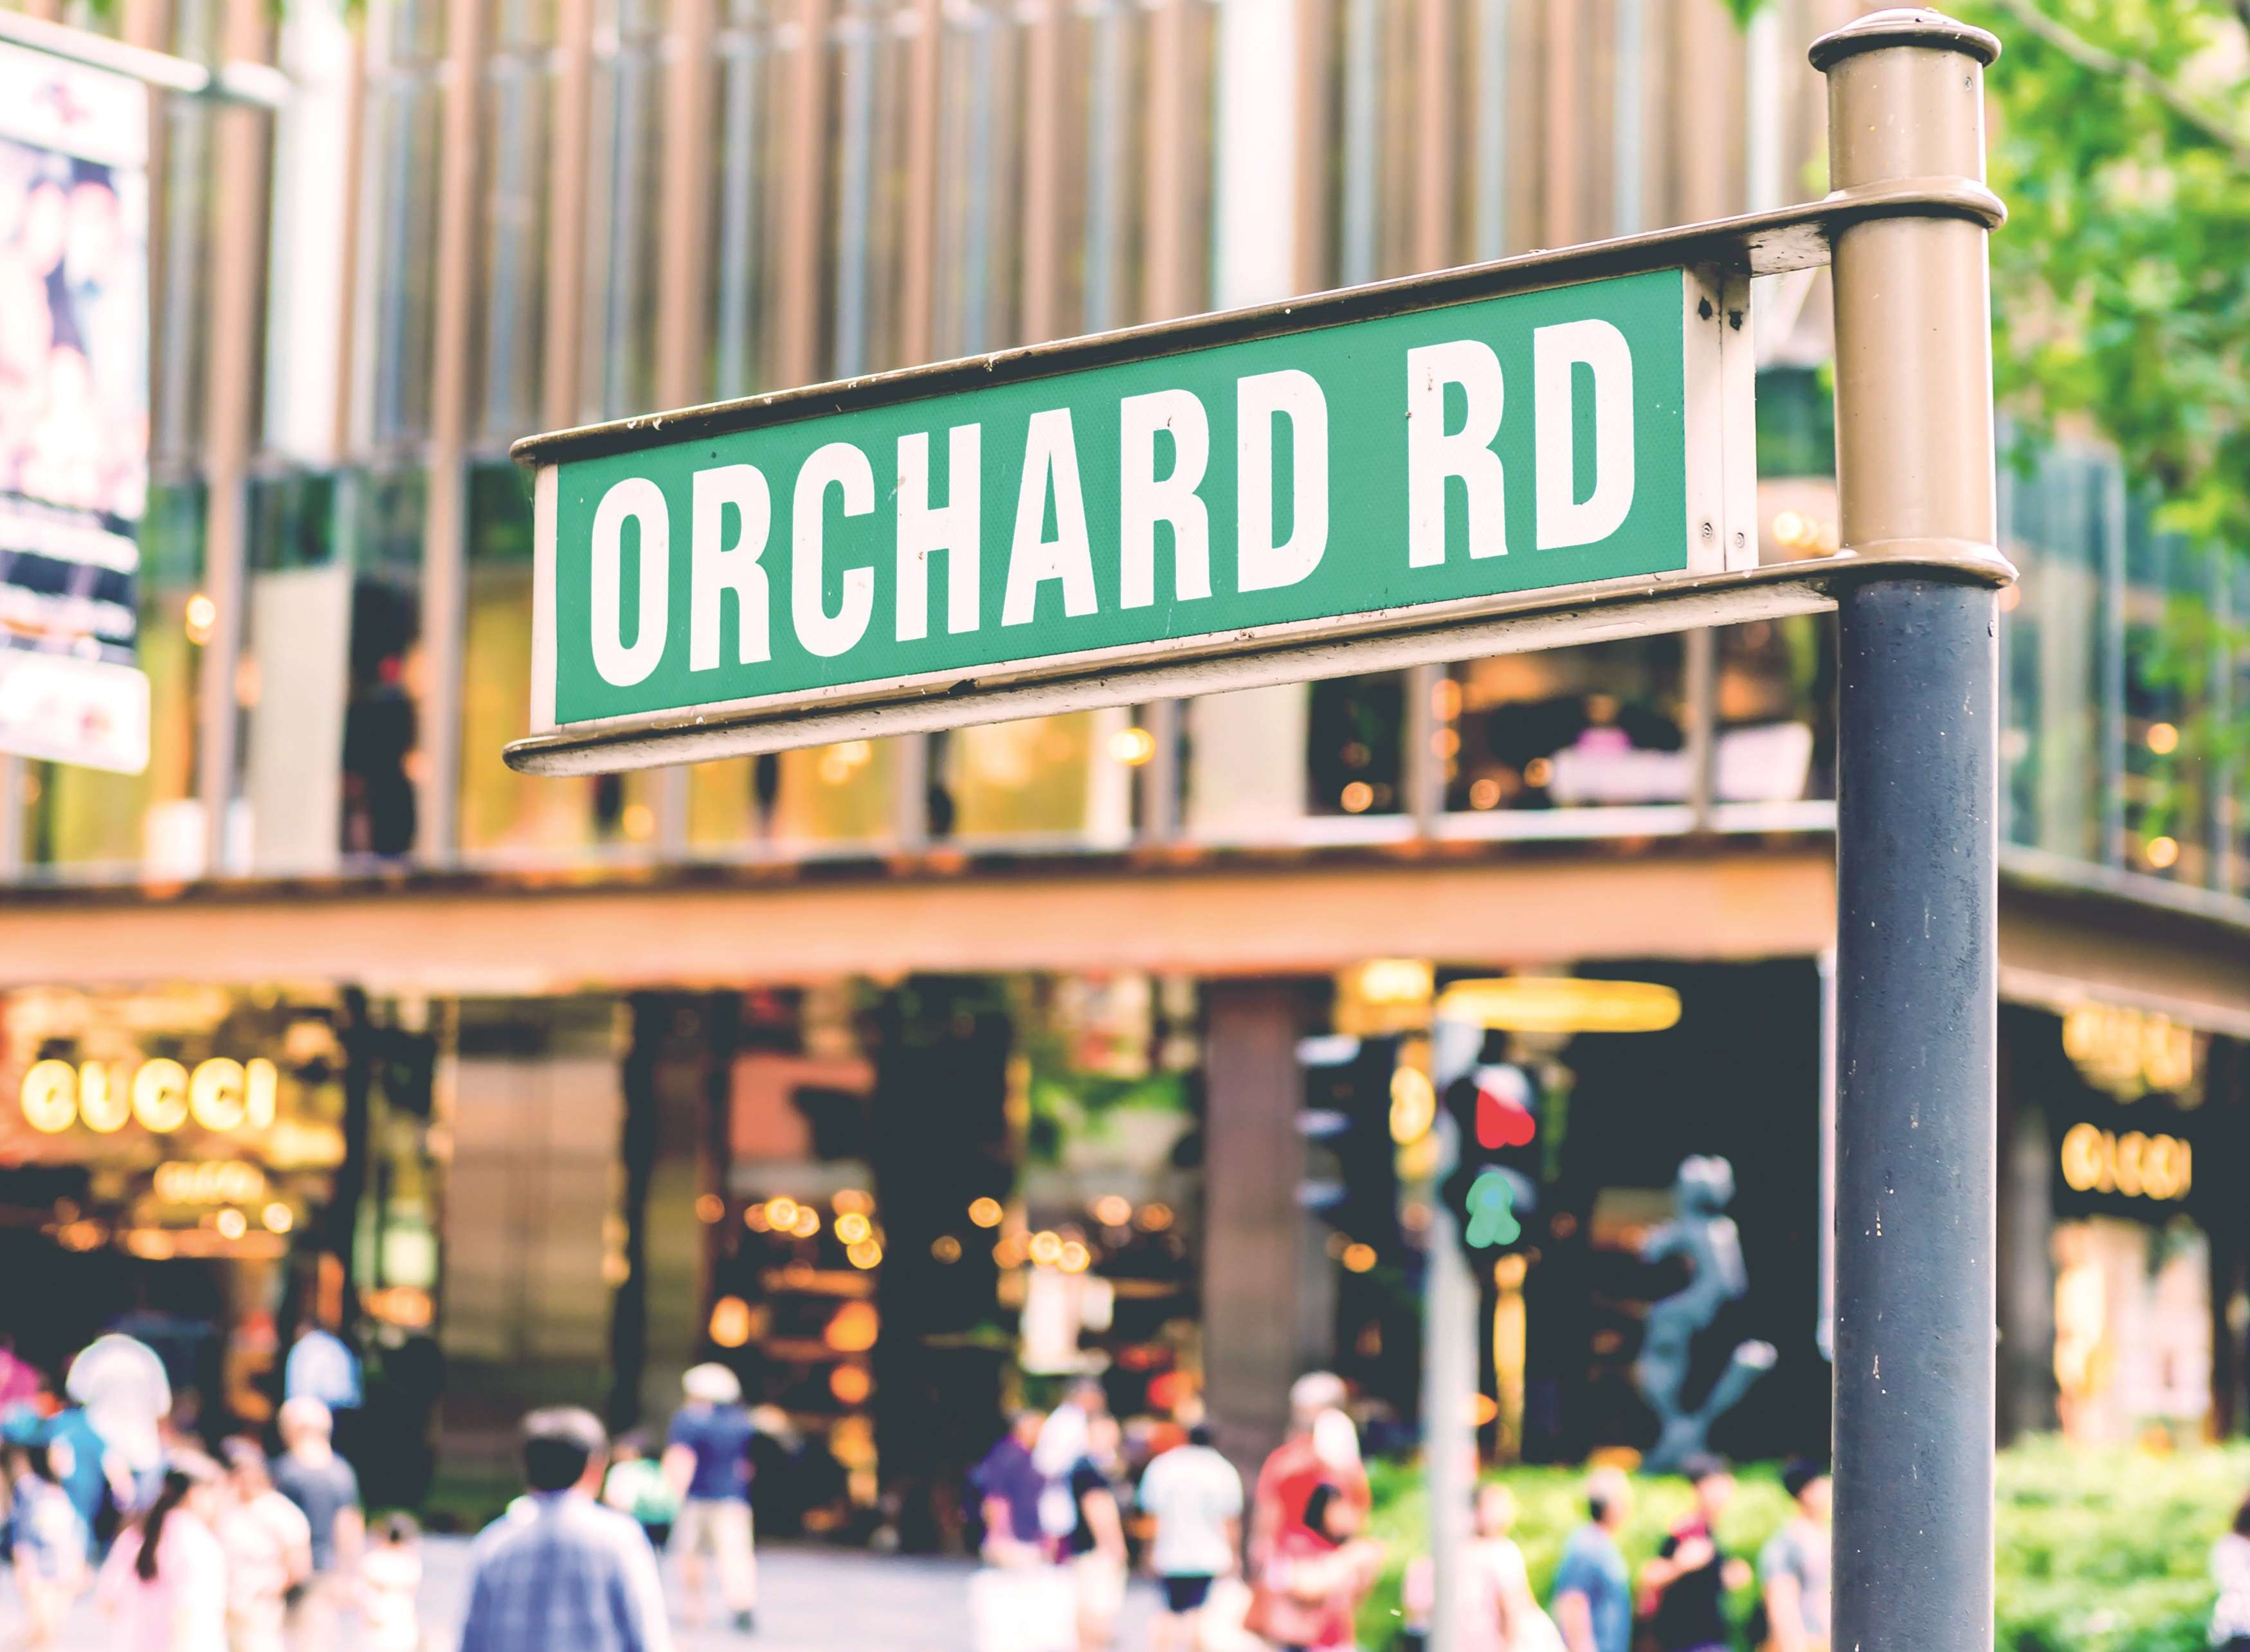 Areas close by the famous Orchard Road shopping strip are regarded as the choicest spots in Singapore for real estate and remain highly coveted by investors